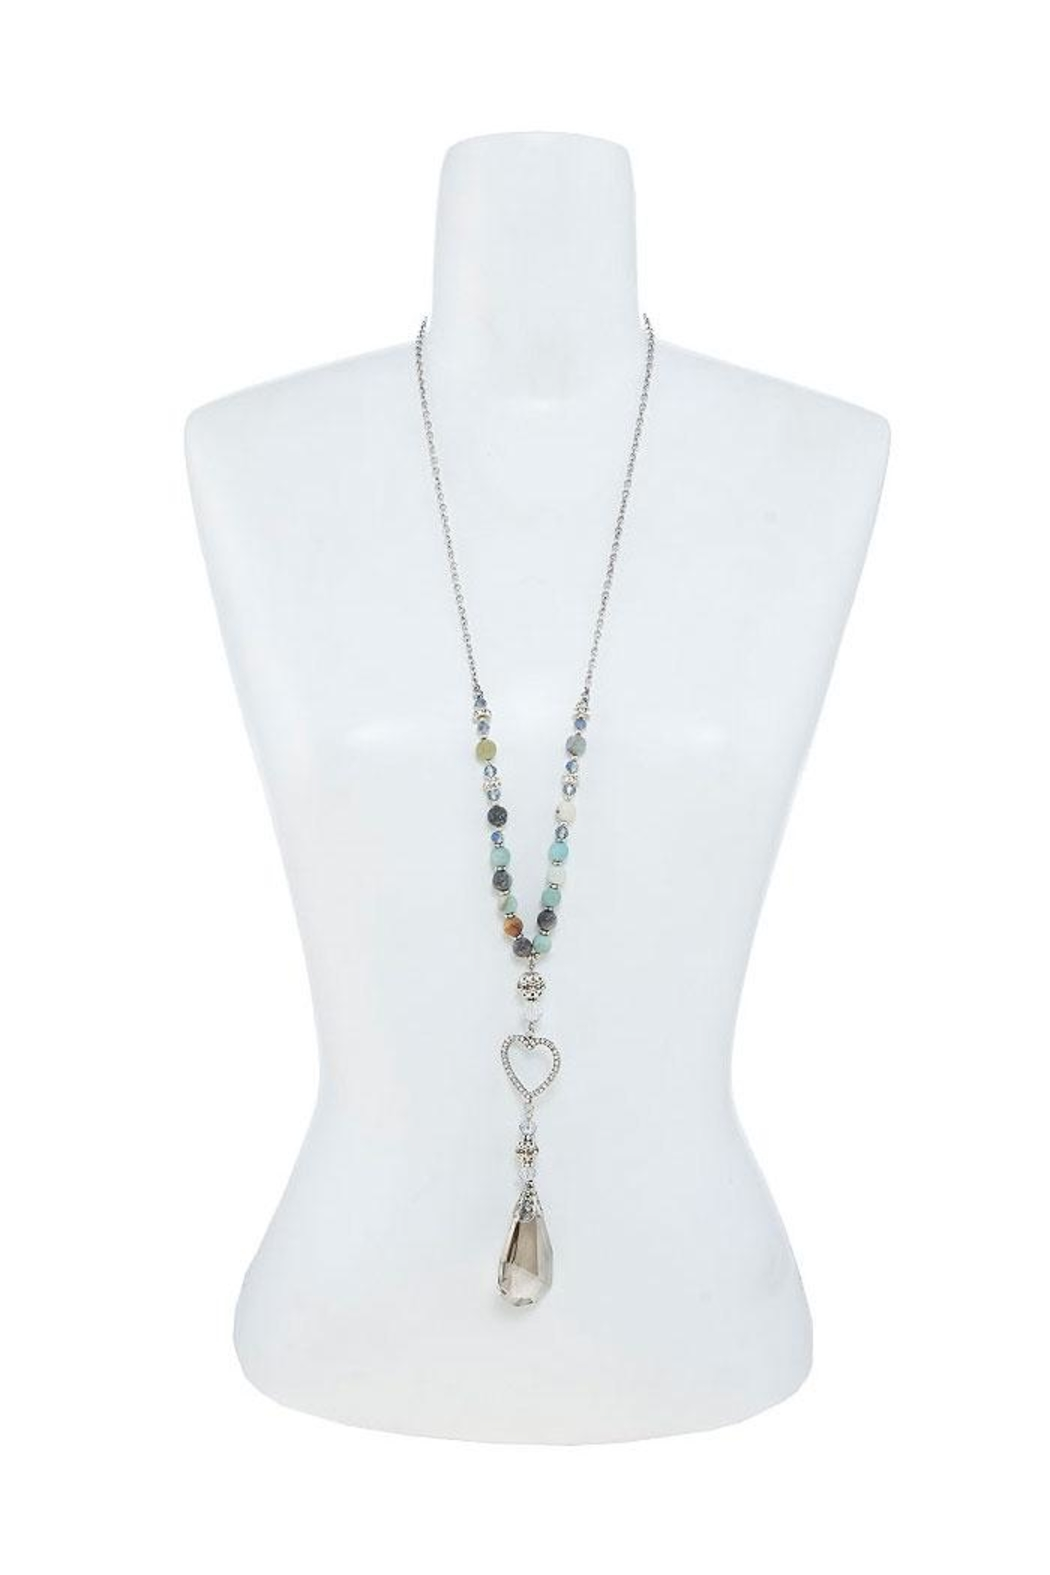 Nadya's Closet Crystal Charm Beaded-Necklace - Side Cropped Image